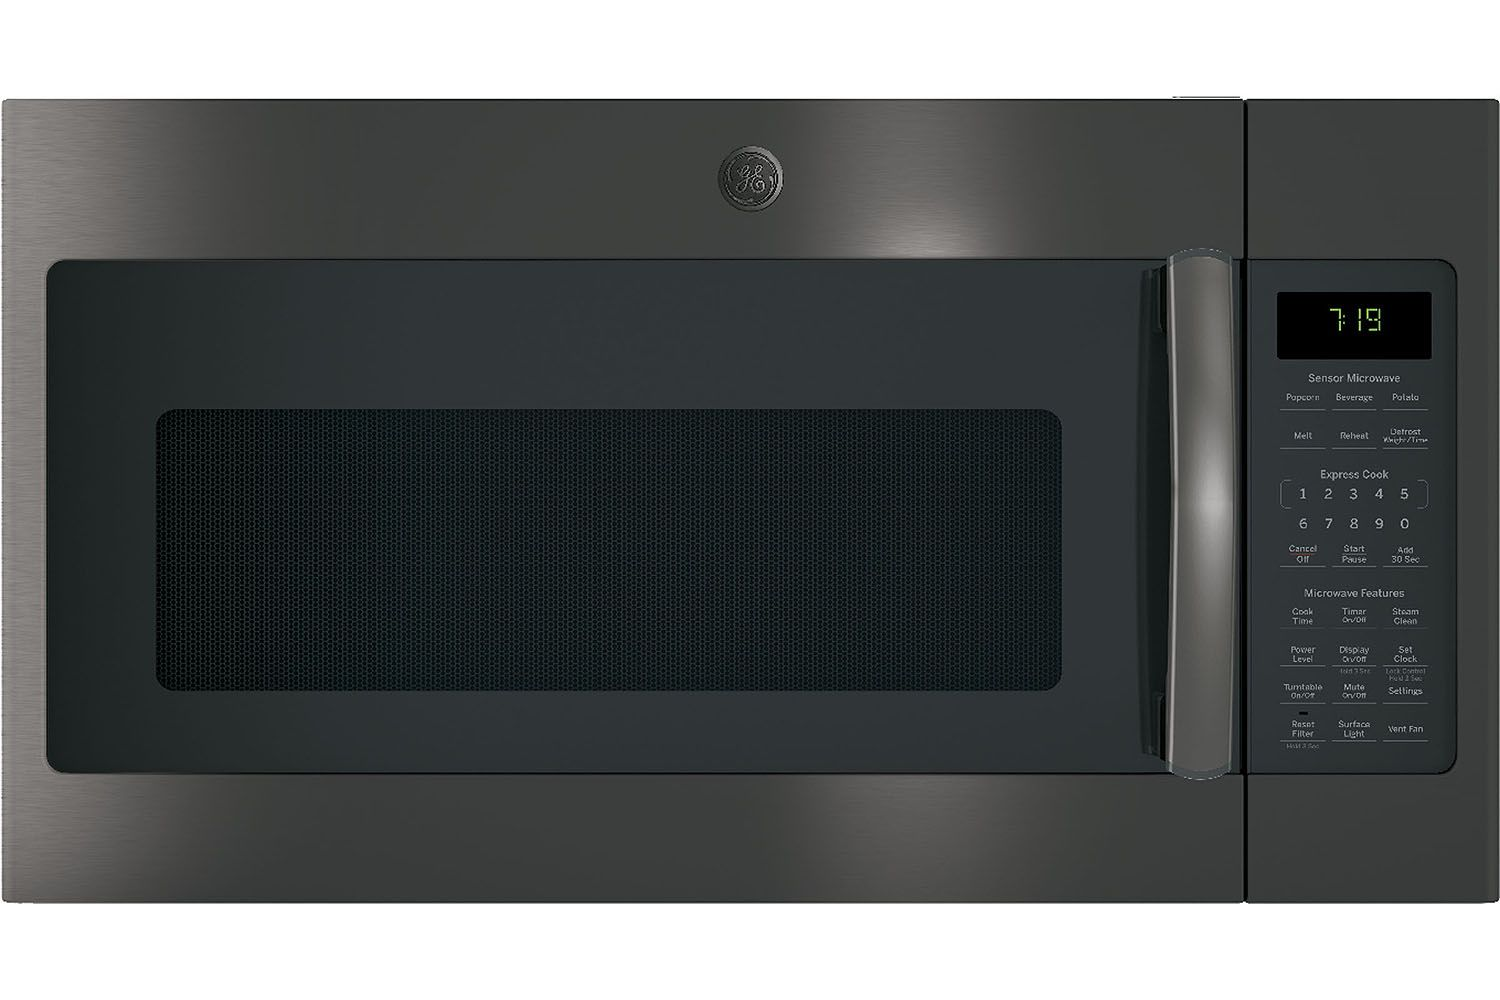 Ge 1 9 Cu Ft Black Stainless Steel Over The Range Microwave Oven